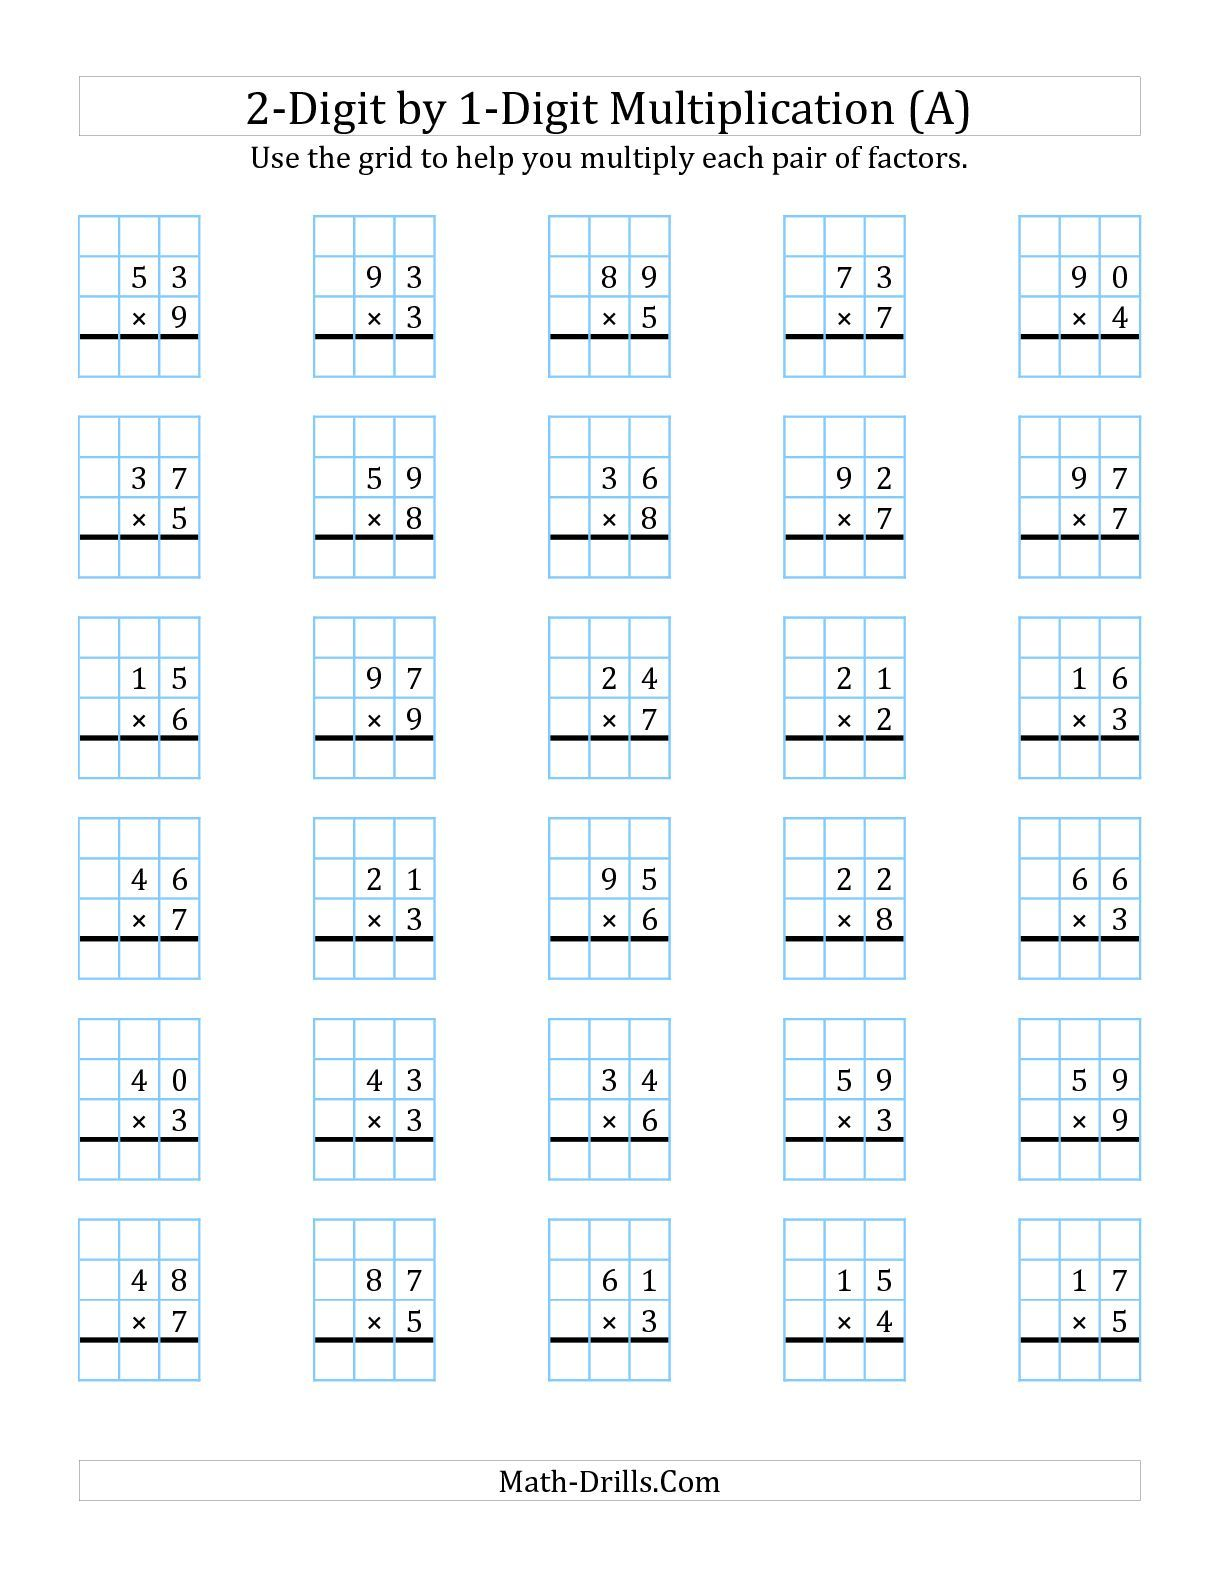 Worksheets Fast Math Worksheets the 2 digit by 1 multiplication with grid support a math worksheet from long page at dri